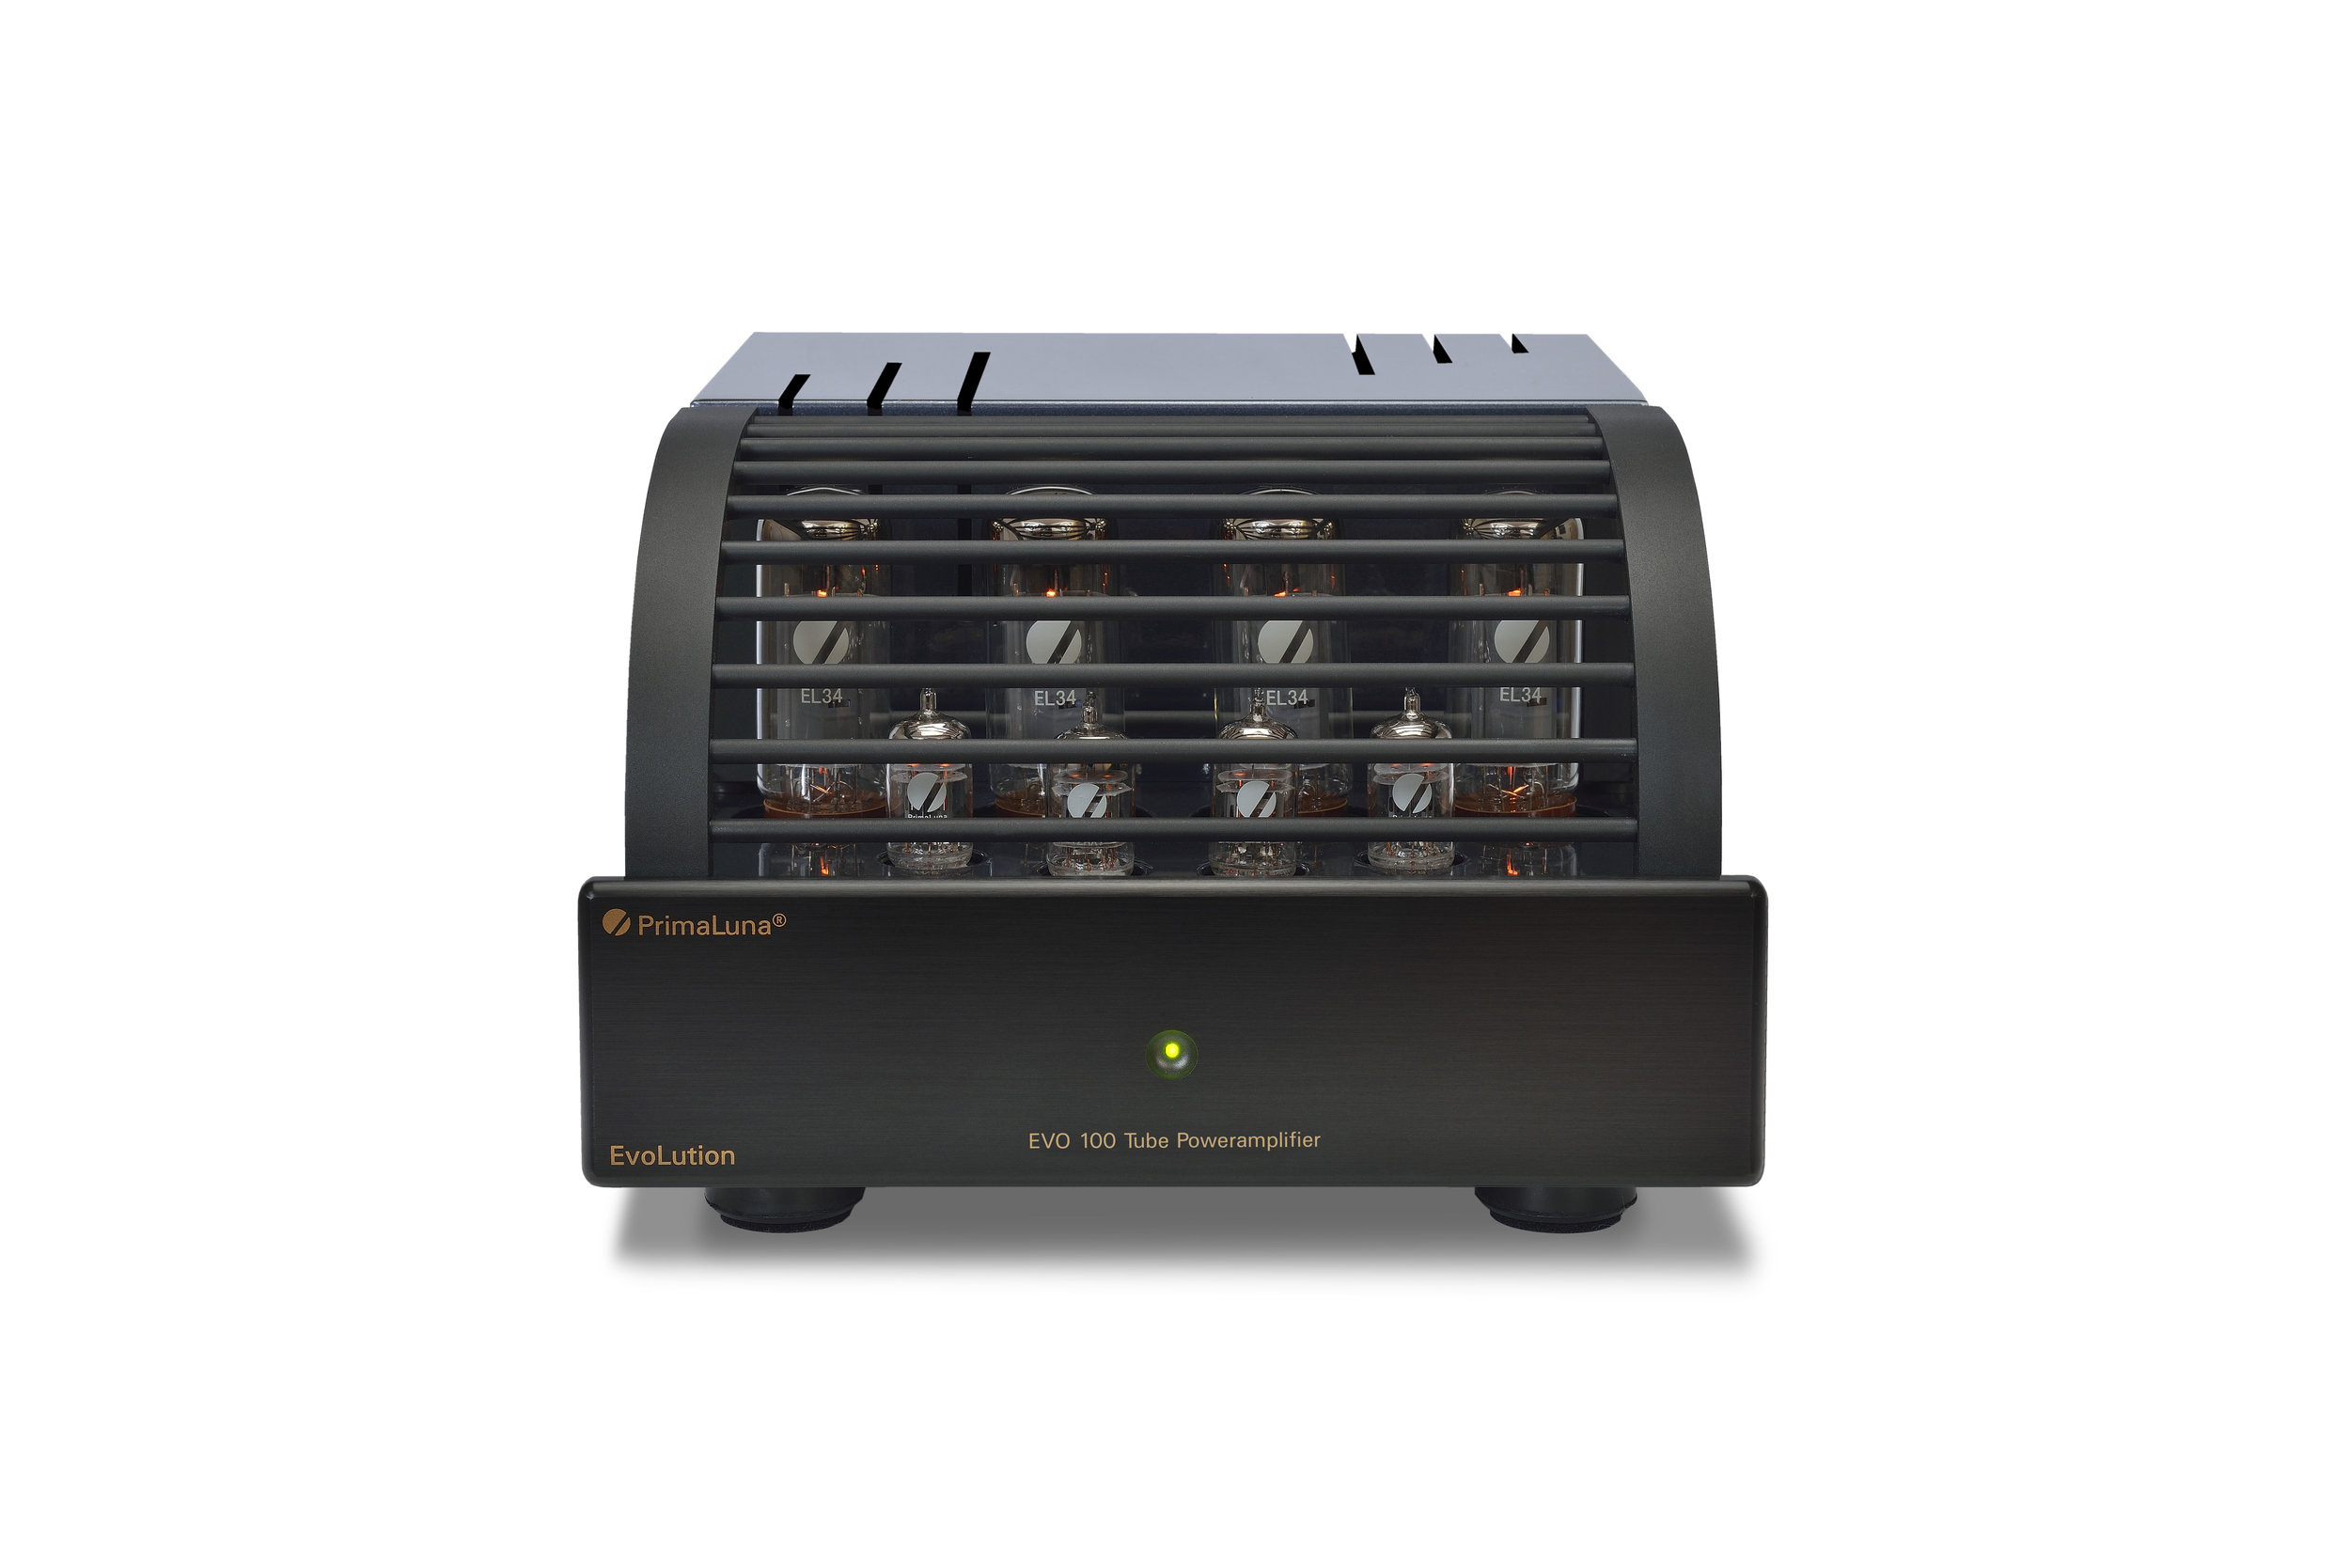 121b - PrimaLuna EVO 100 Tube Poweramplifier - black - front - white background.jpg